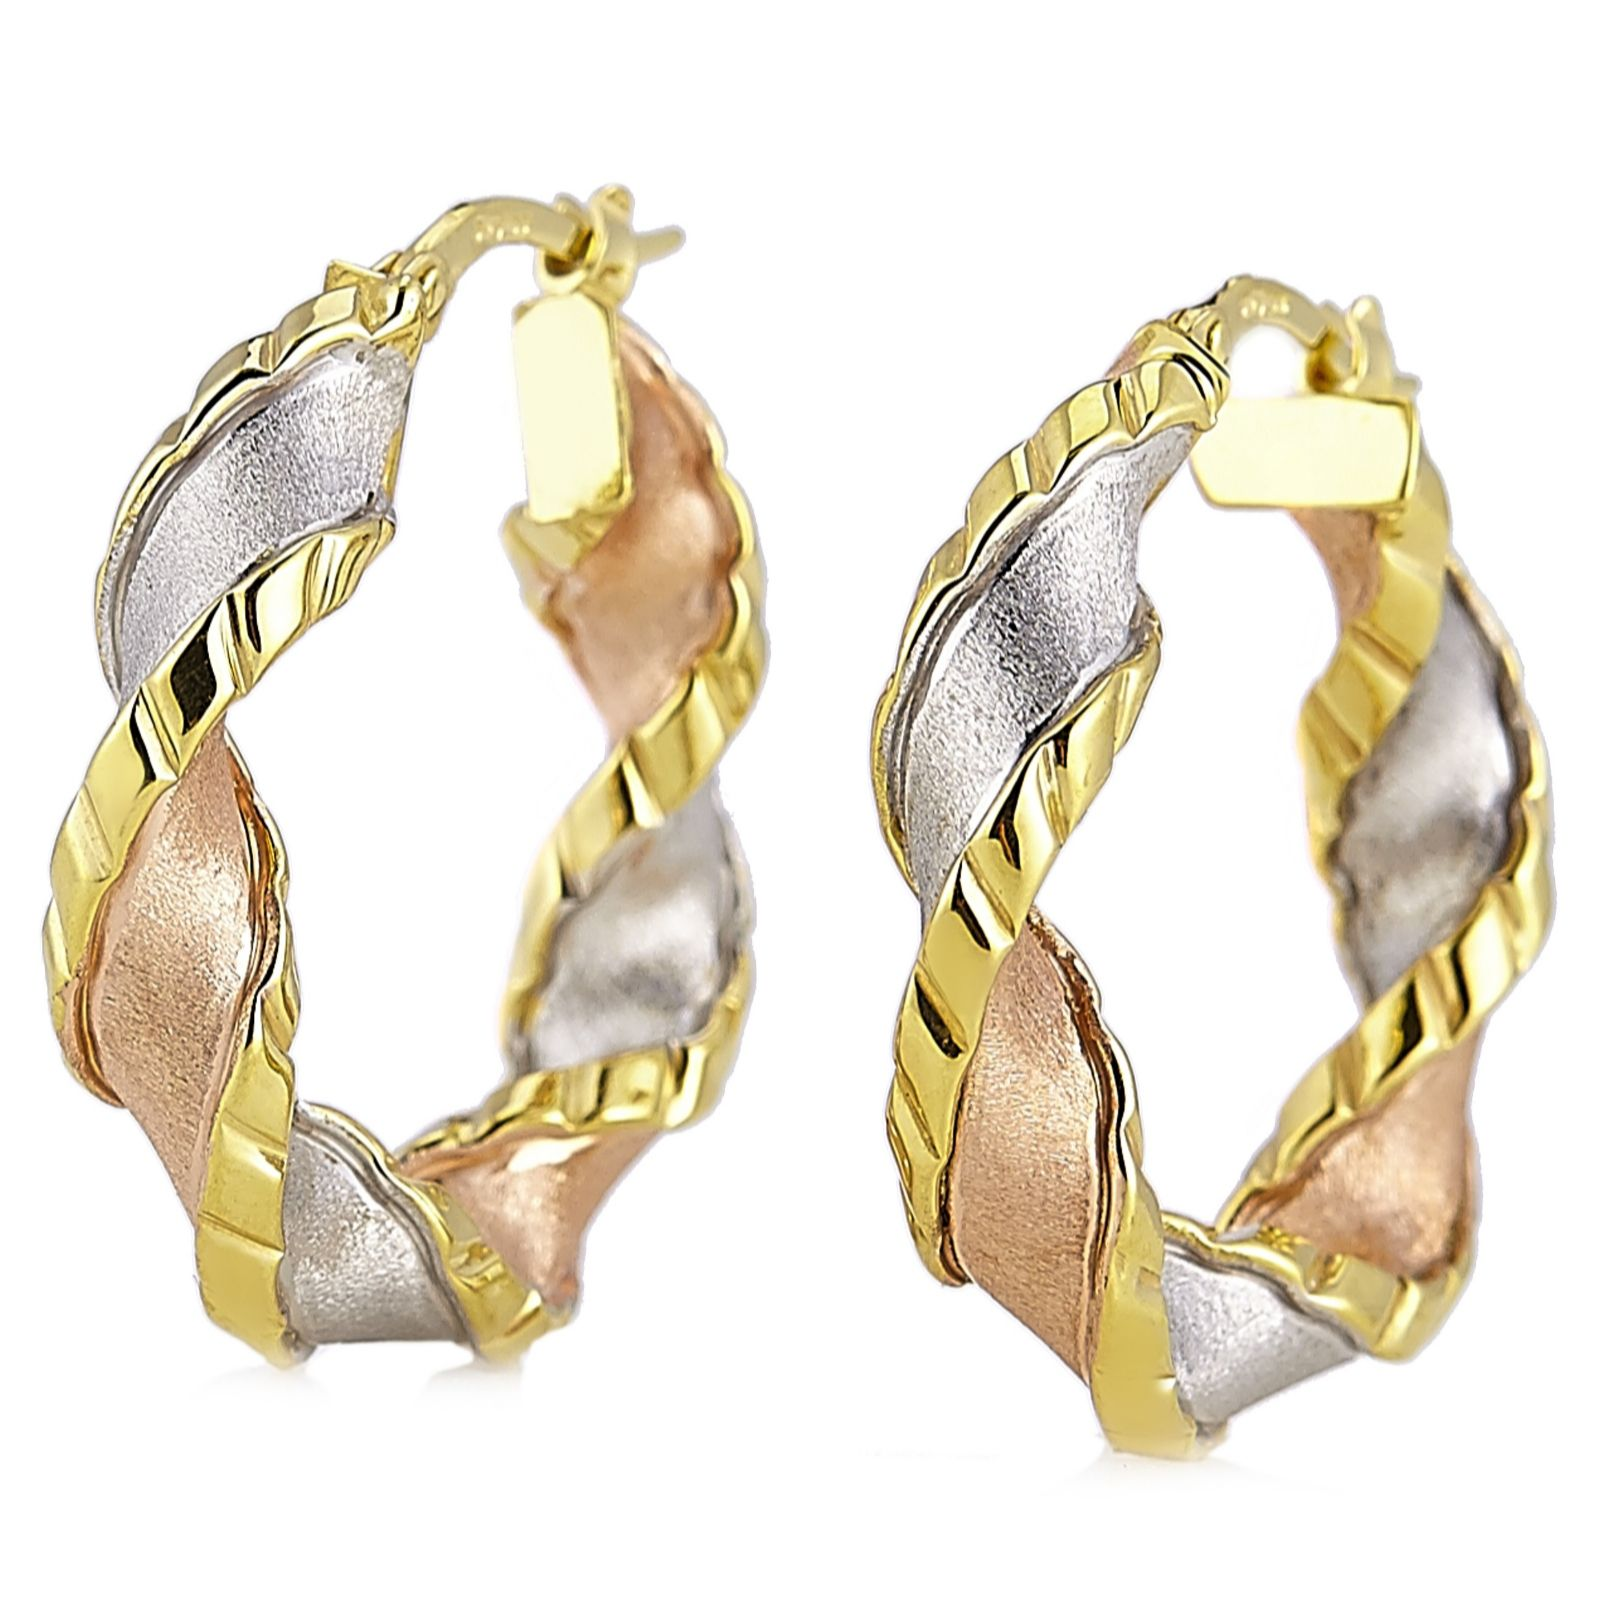 9ct Gold 3 Colour Twist Hoop Creole Earrings Page 1 Qvc Uk